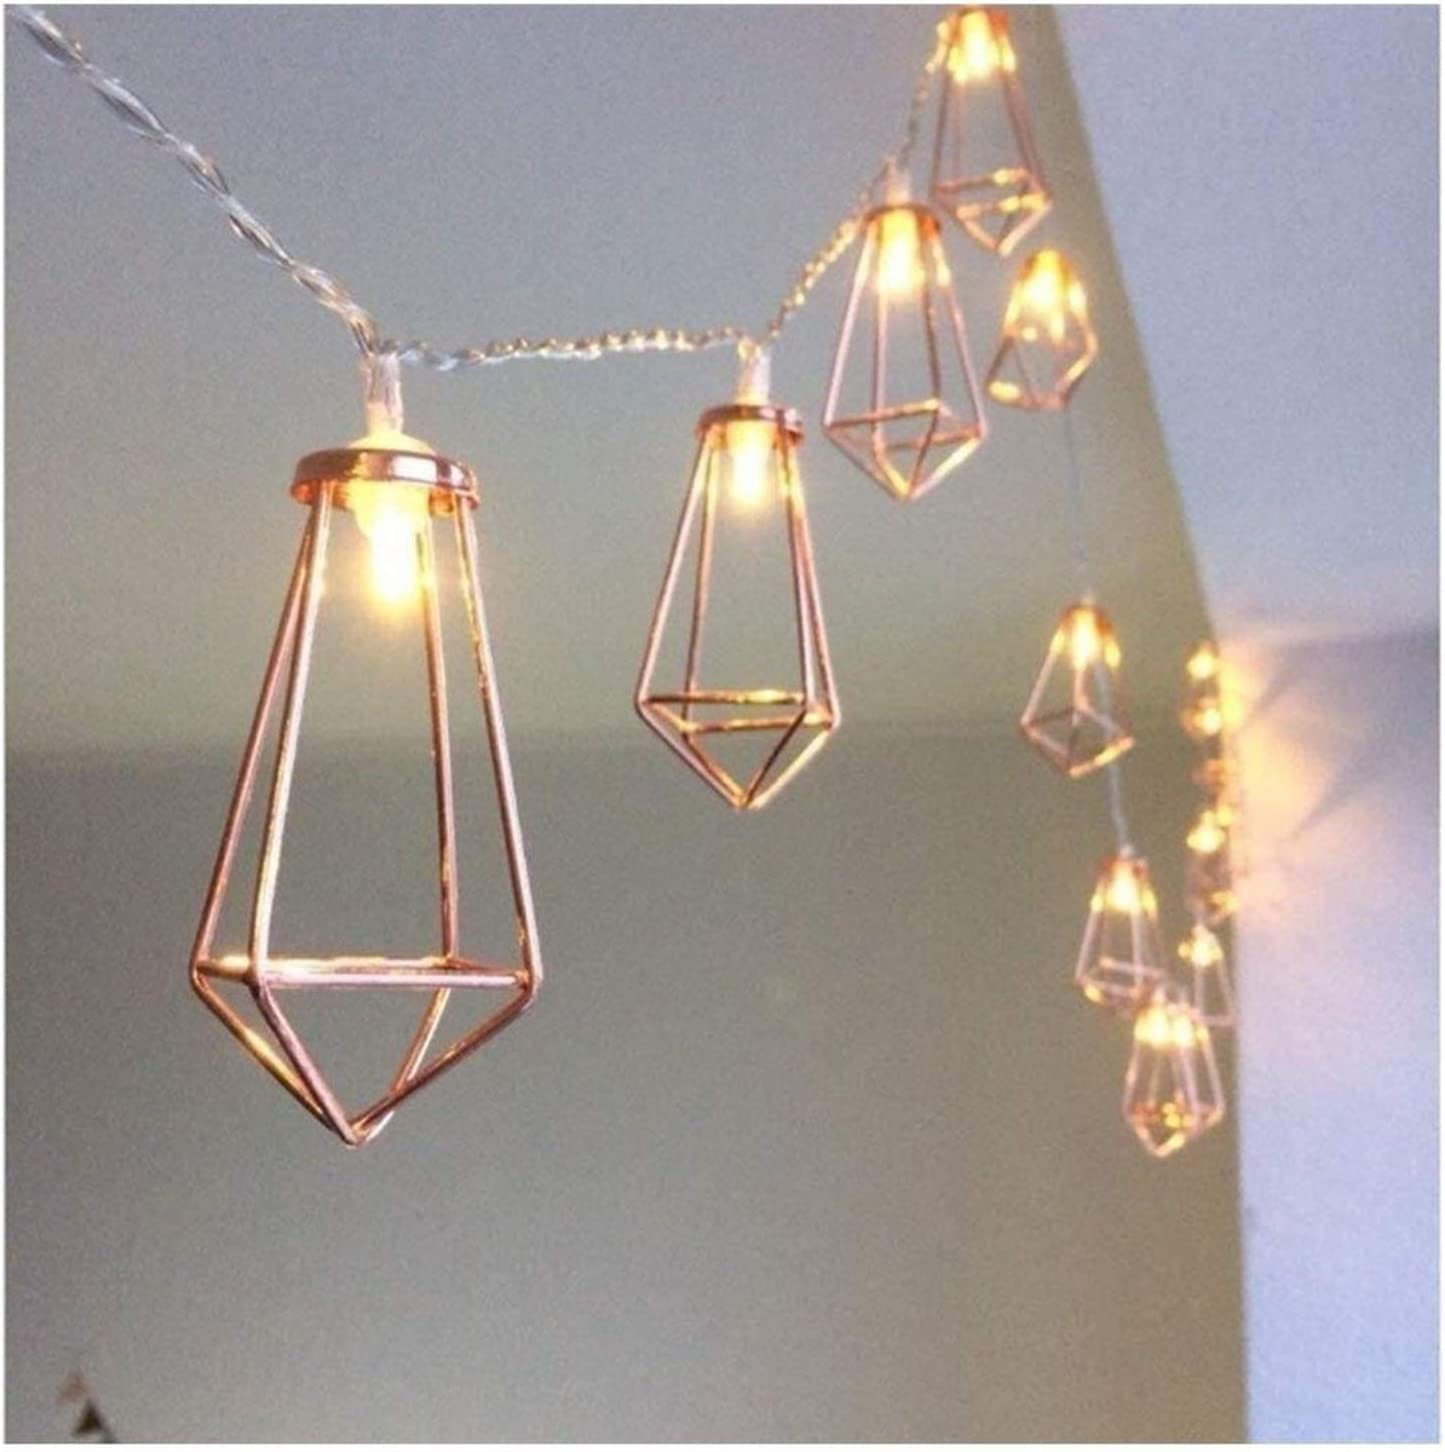 Online limited product Fees free!! ZSMPY Fairy Lights Metal Led String Light LEDs Holi 2-10m 10-80